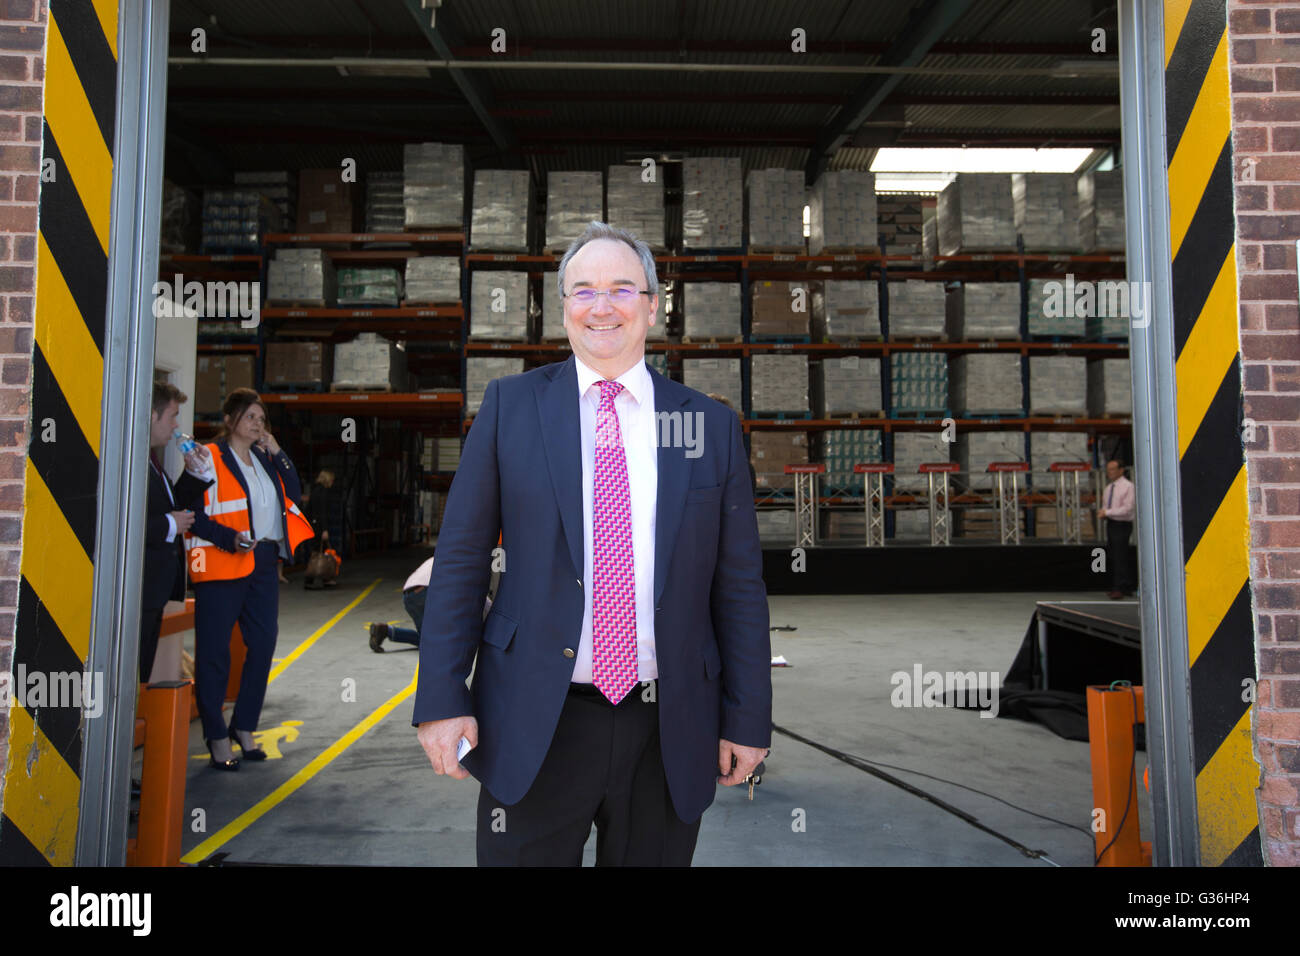 Vote Leave campaign event, Denys C. Shortt CEO of DCS Group soap manufacturers speaking at in Stratford-upon-Avon, - Stock Image